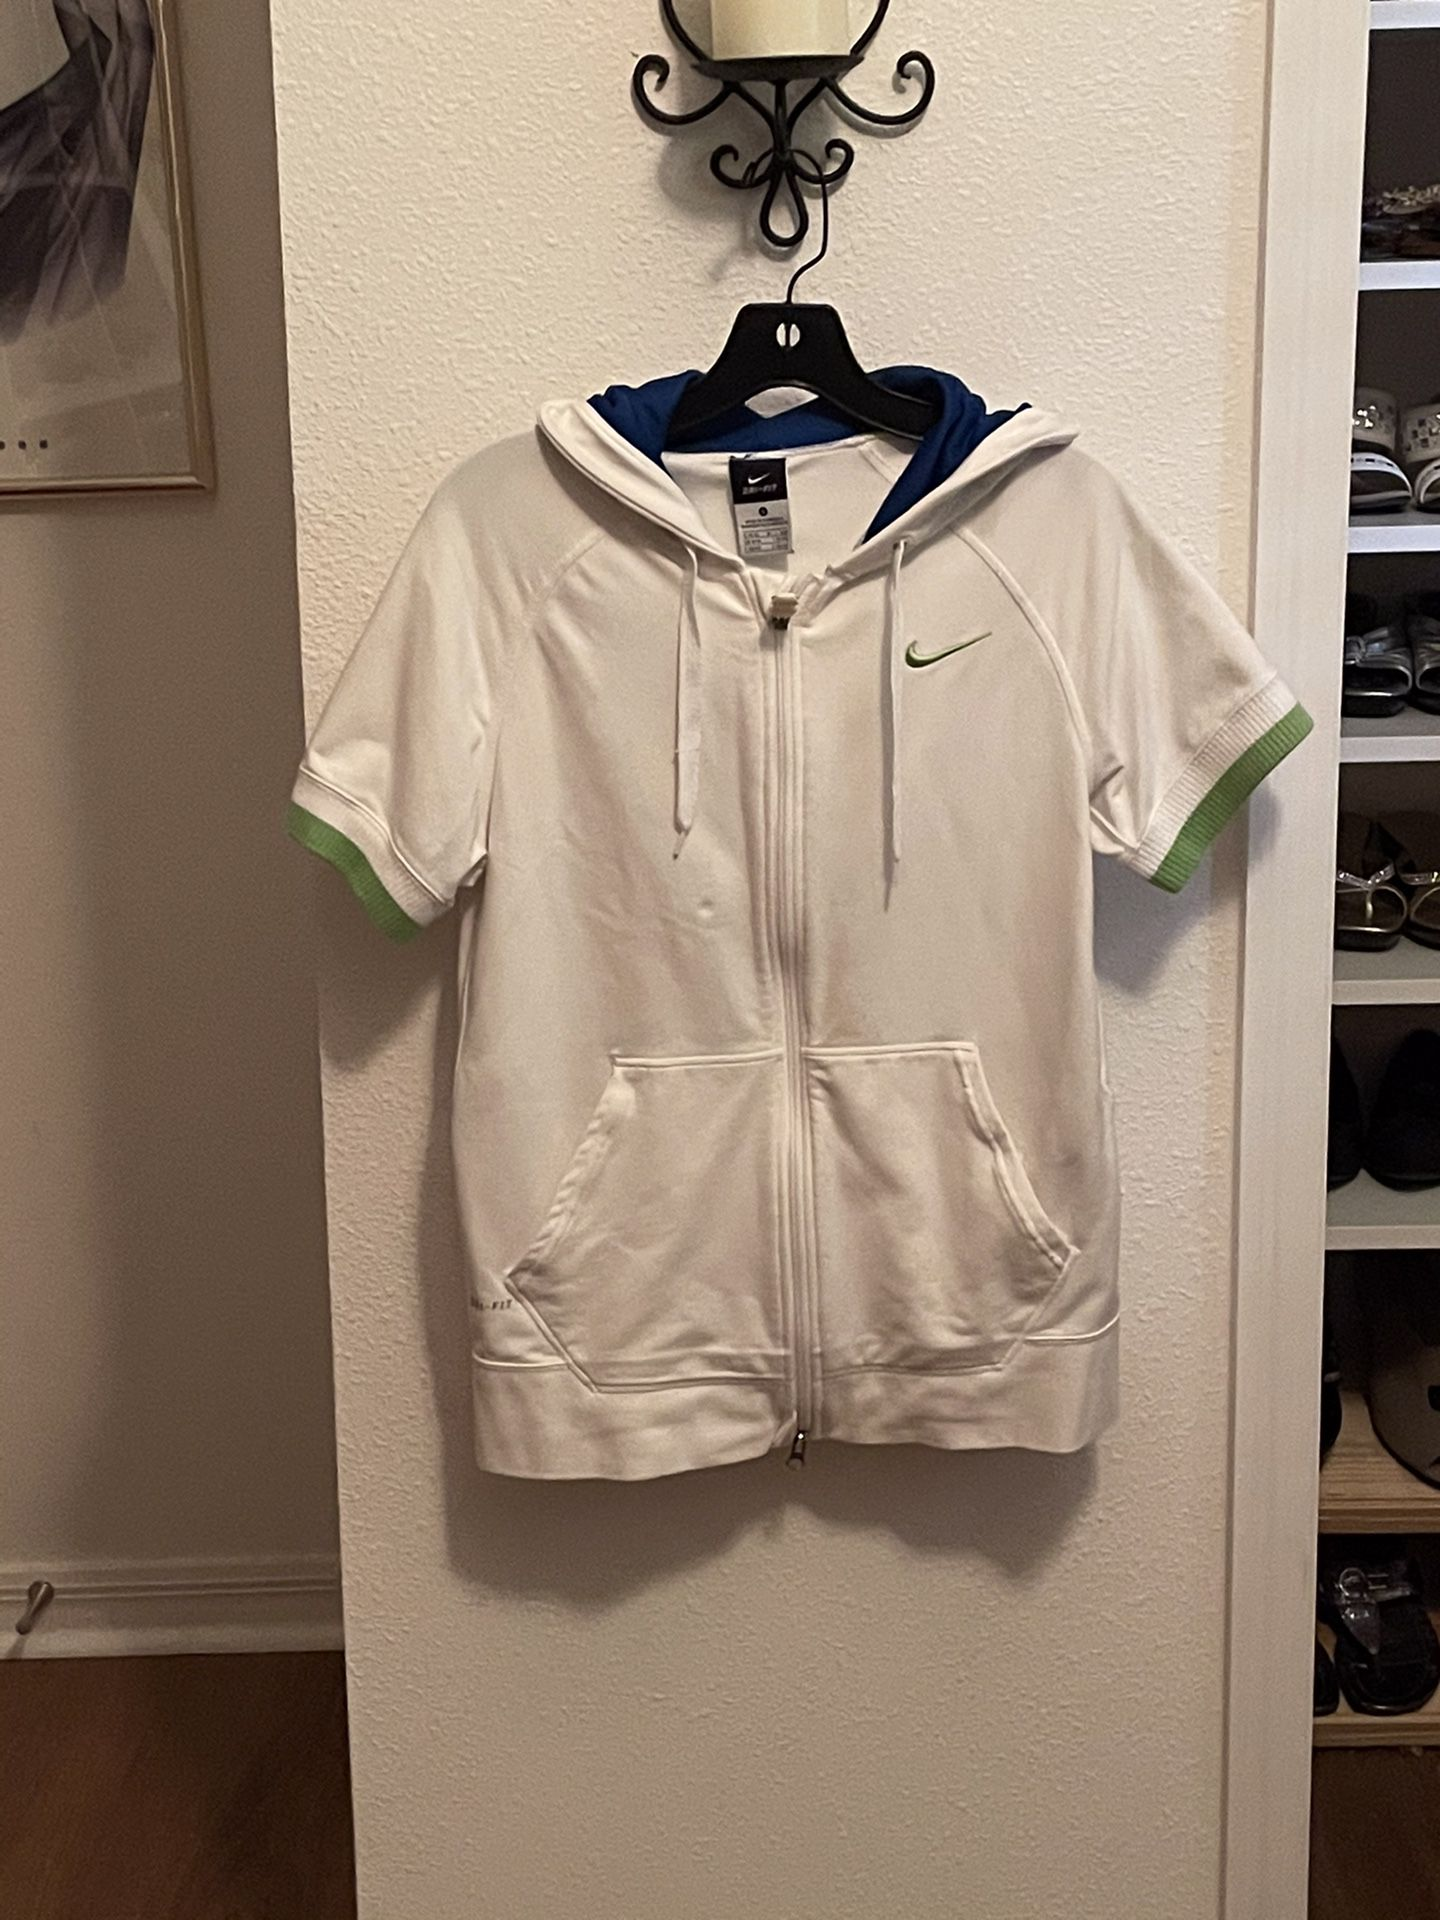 Nike, White With Green And Blue Trim, Medium